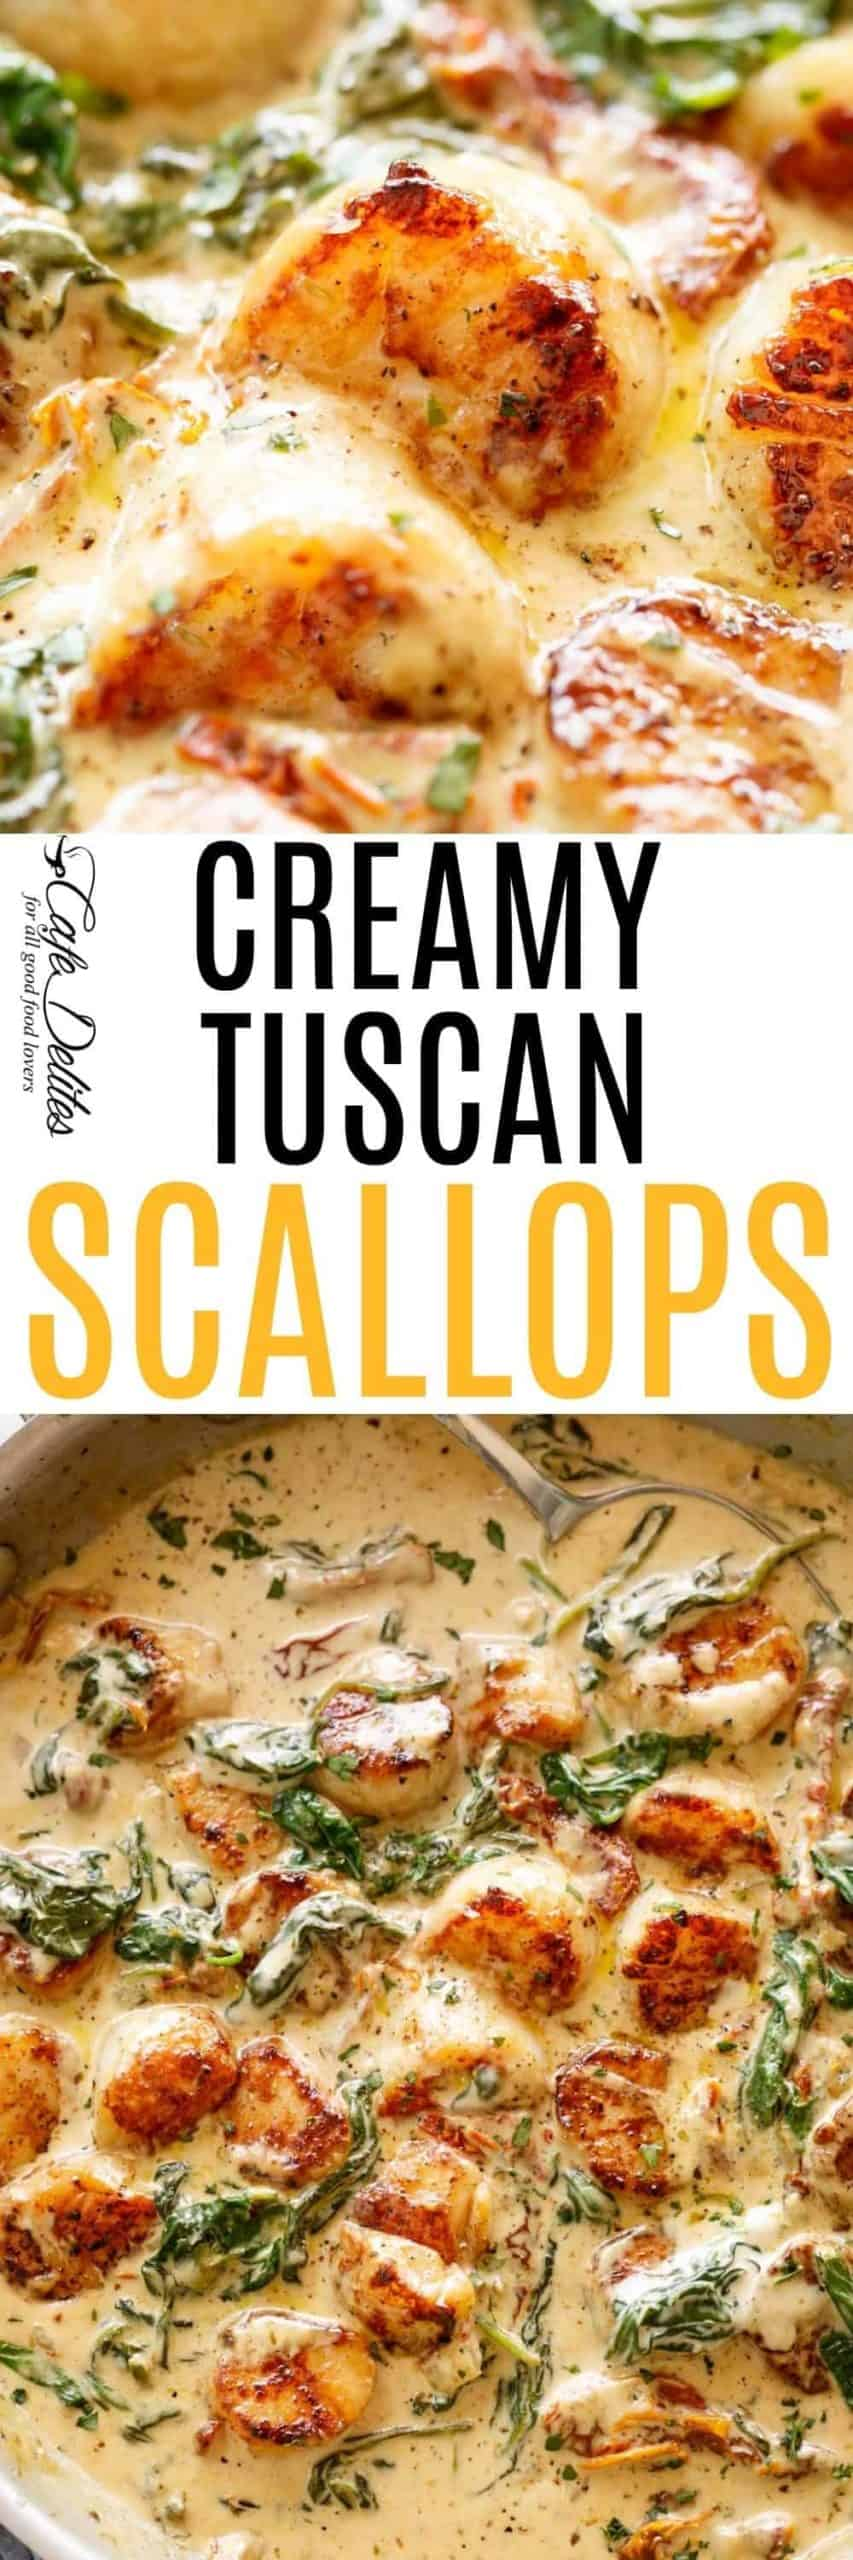 Creamy Tuscan Scallops | cafedelites.com